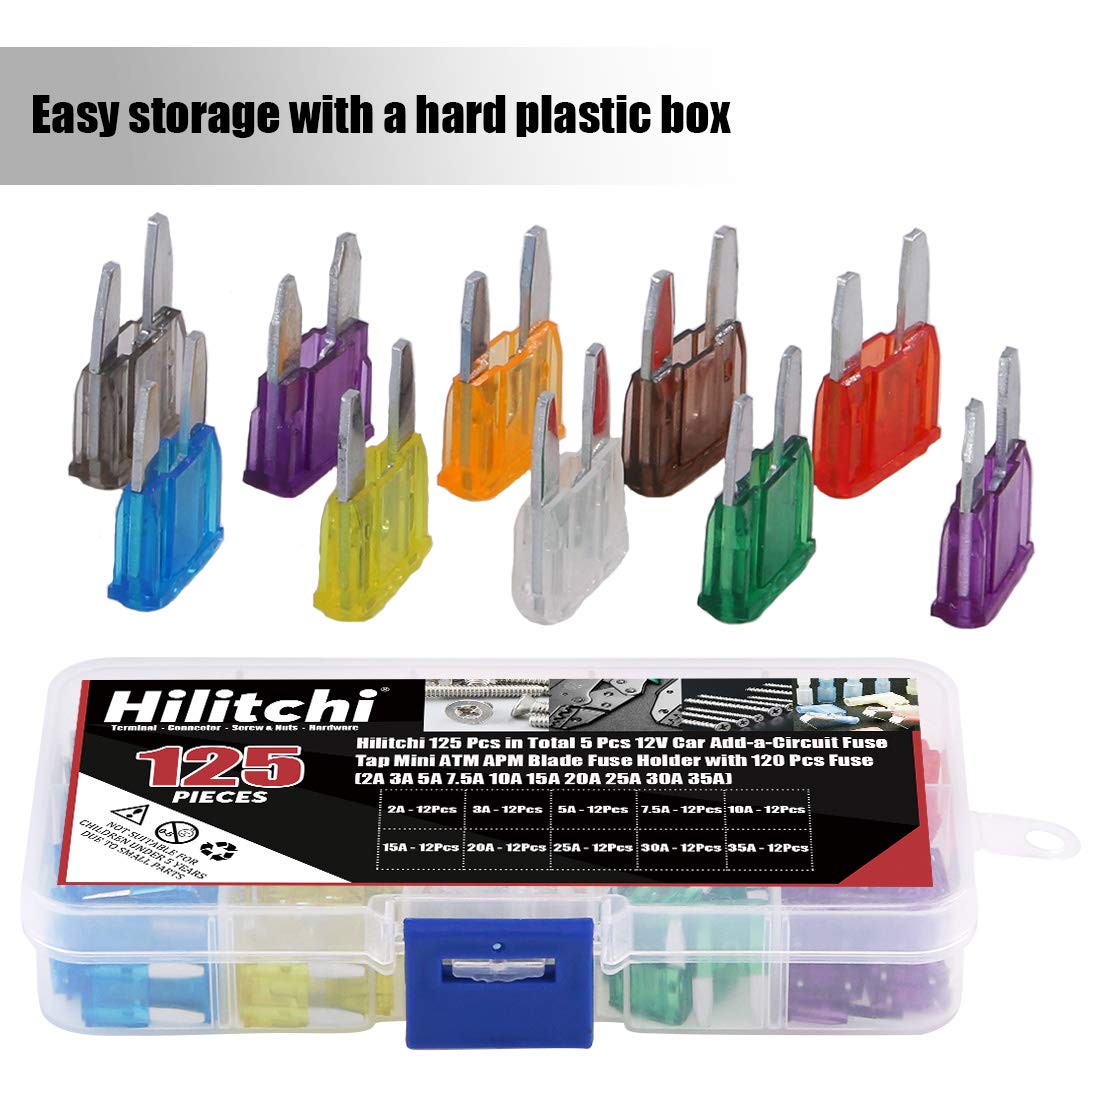 Hilitchi 125 Pcs in Total 5 Pcs 12V Car Add-a-Circuit Fuse Smal Tap ATM APM Blade Fuse Holder with 120 Pcs Fuse 2A 3A 5A 7.5A 10A 15A 20A 25A 30A 35A